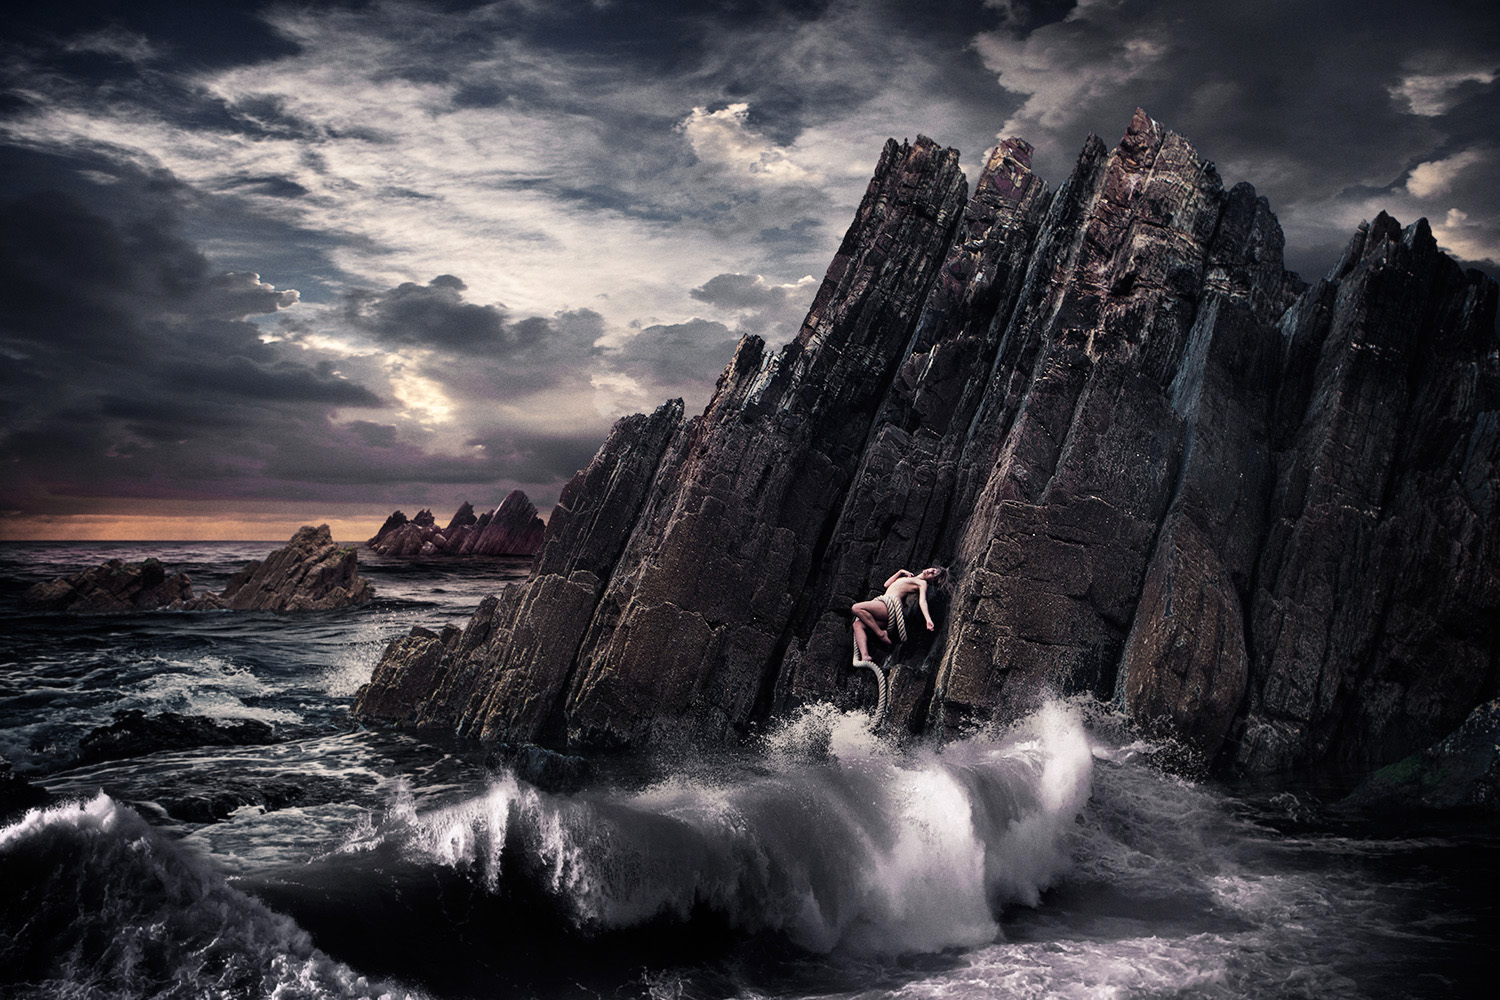 Raphaella on Welsh Rocks cast out to sea in theatrical image.